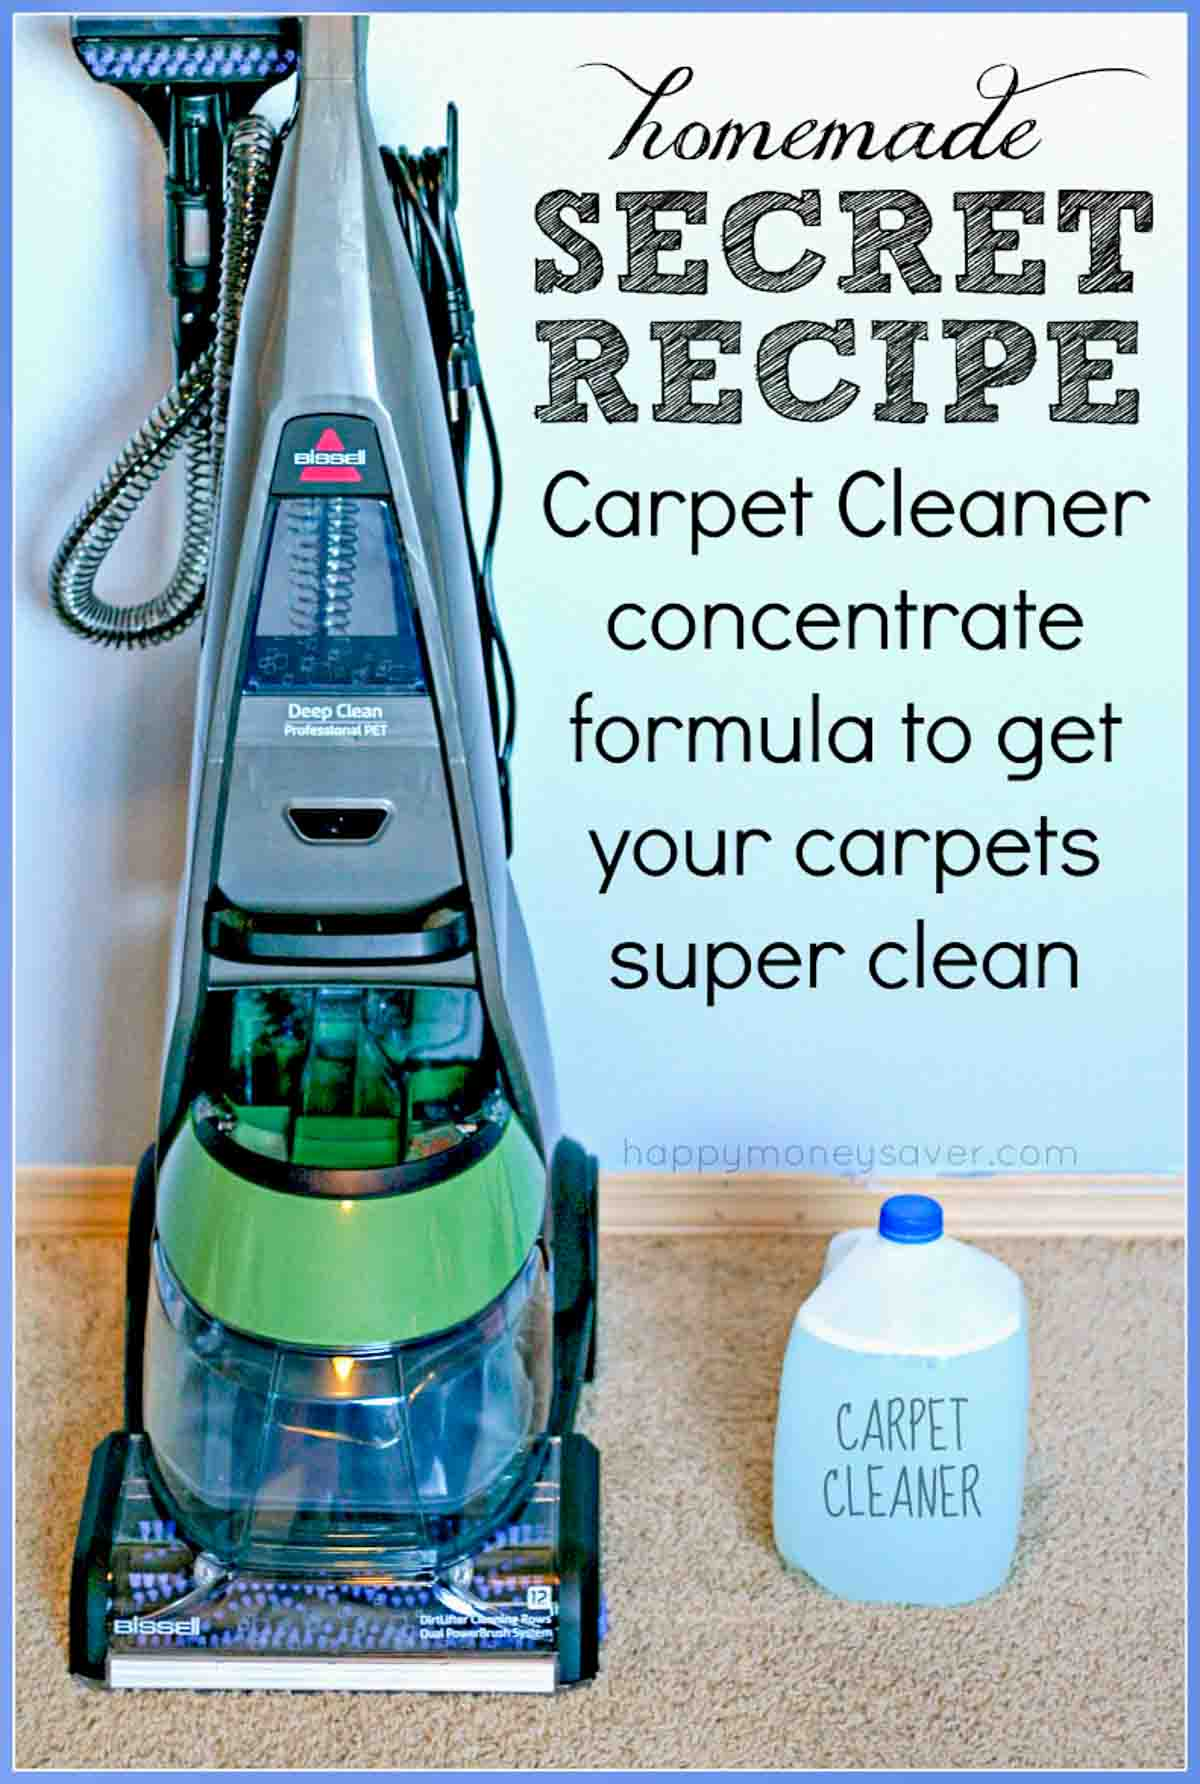 Bissell Carpet Shampoo Machine with Homemade Carpet Cleaning Solution for Machines!